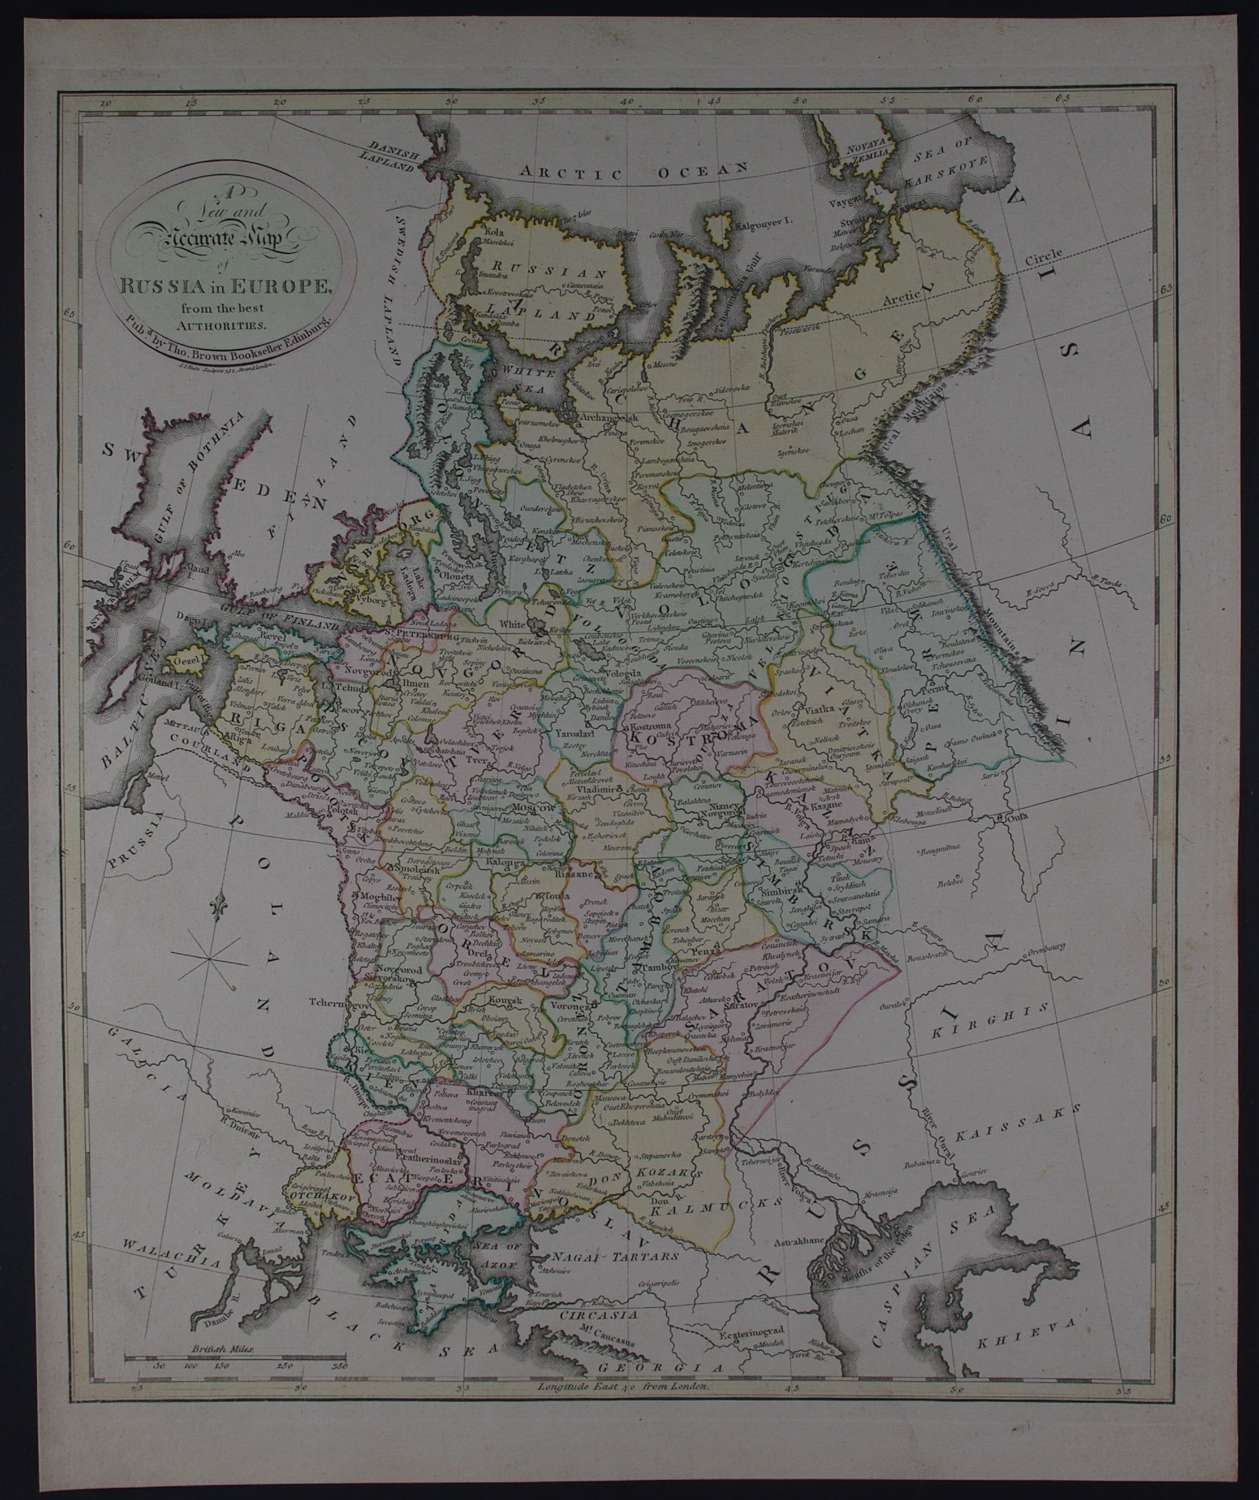 A New and Accurate Map of Russia in Europe By Thomas Brown